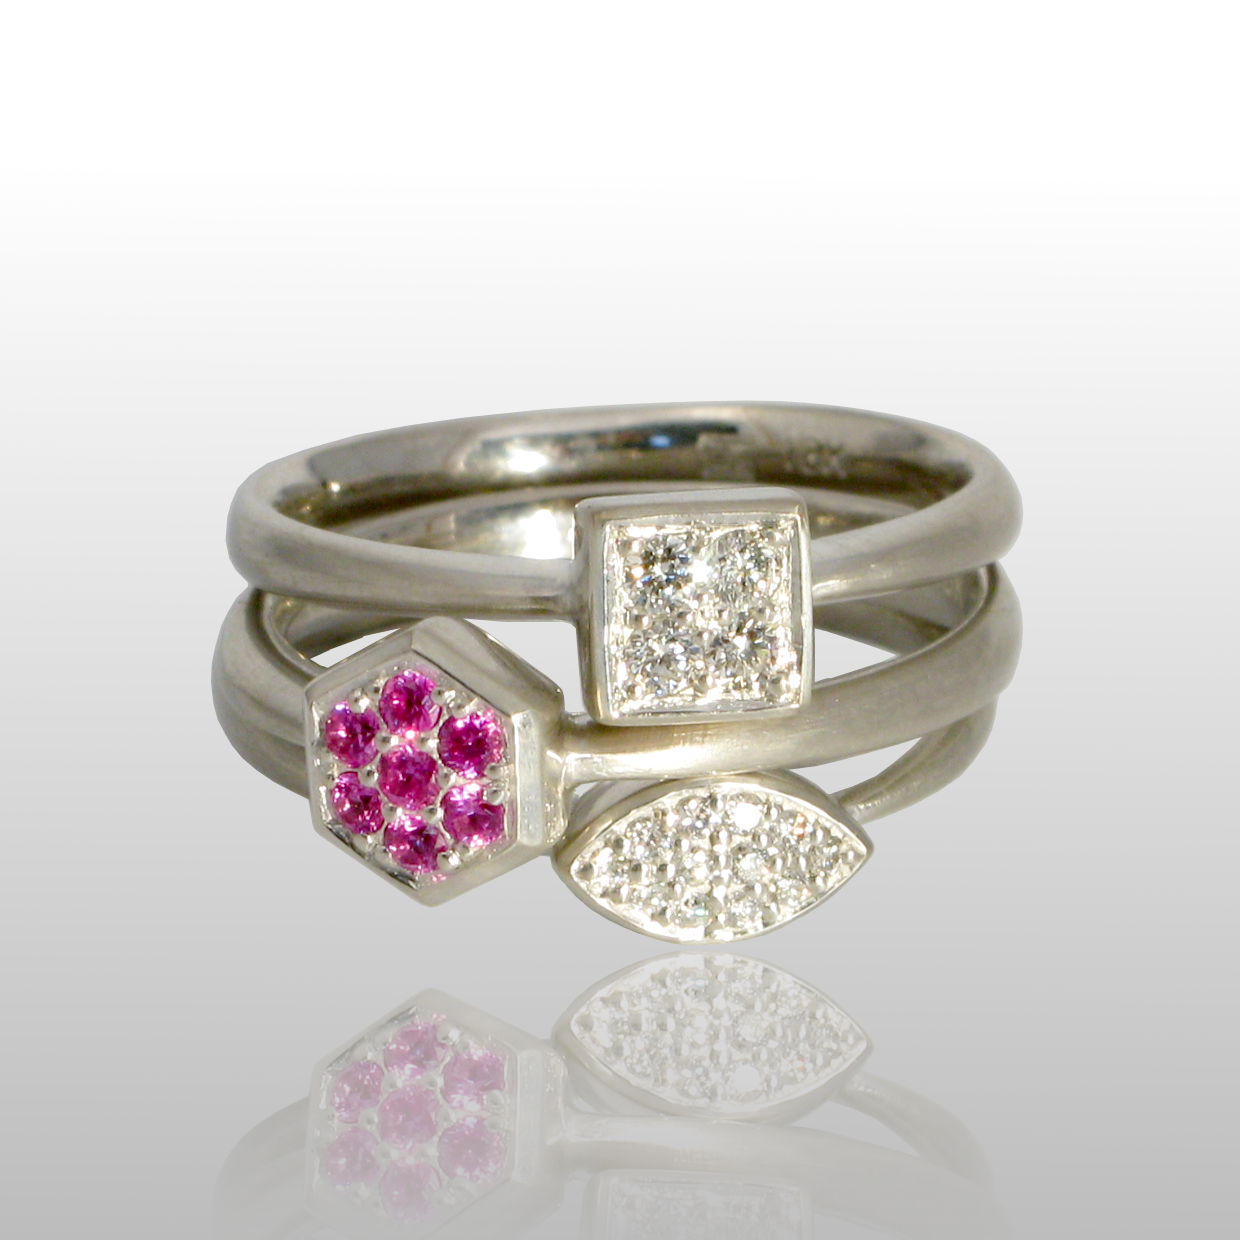 Stackable designer rings 'Stax' in platinum or 18k white gold with diamond and pink sapphire pavé by Pratima Design Fine Art Jewelry